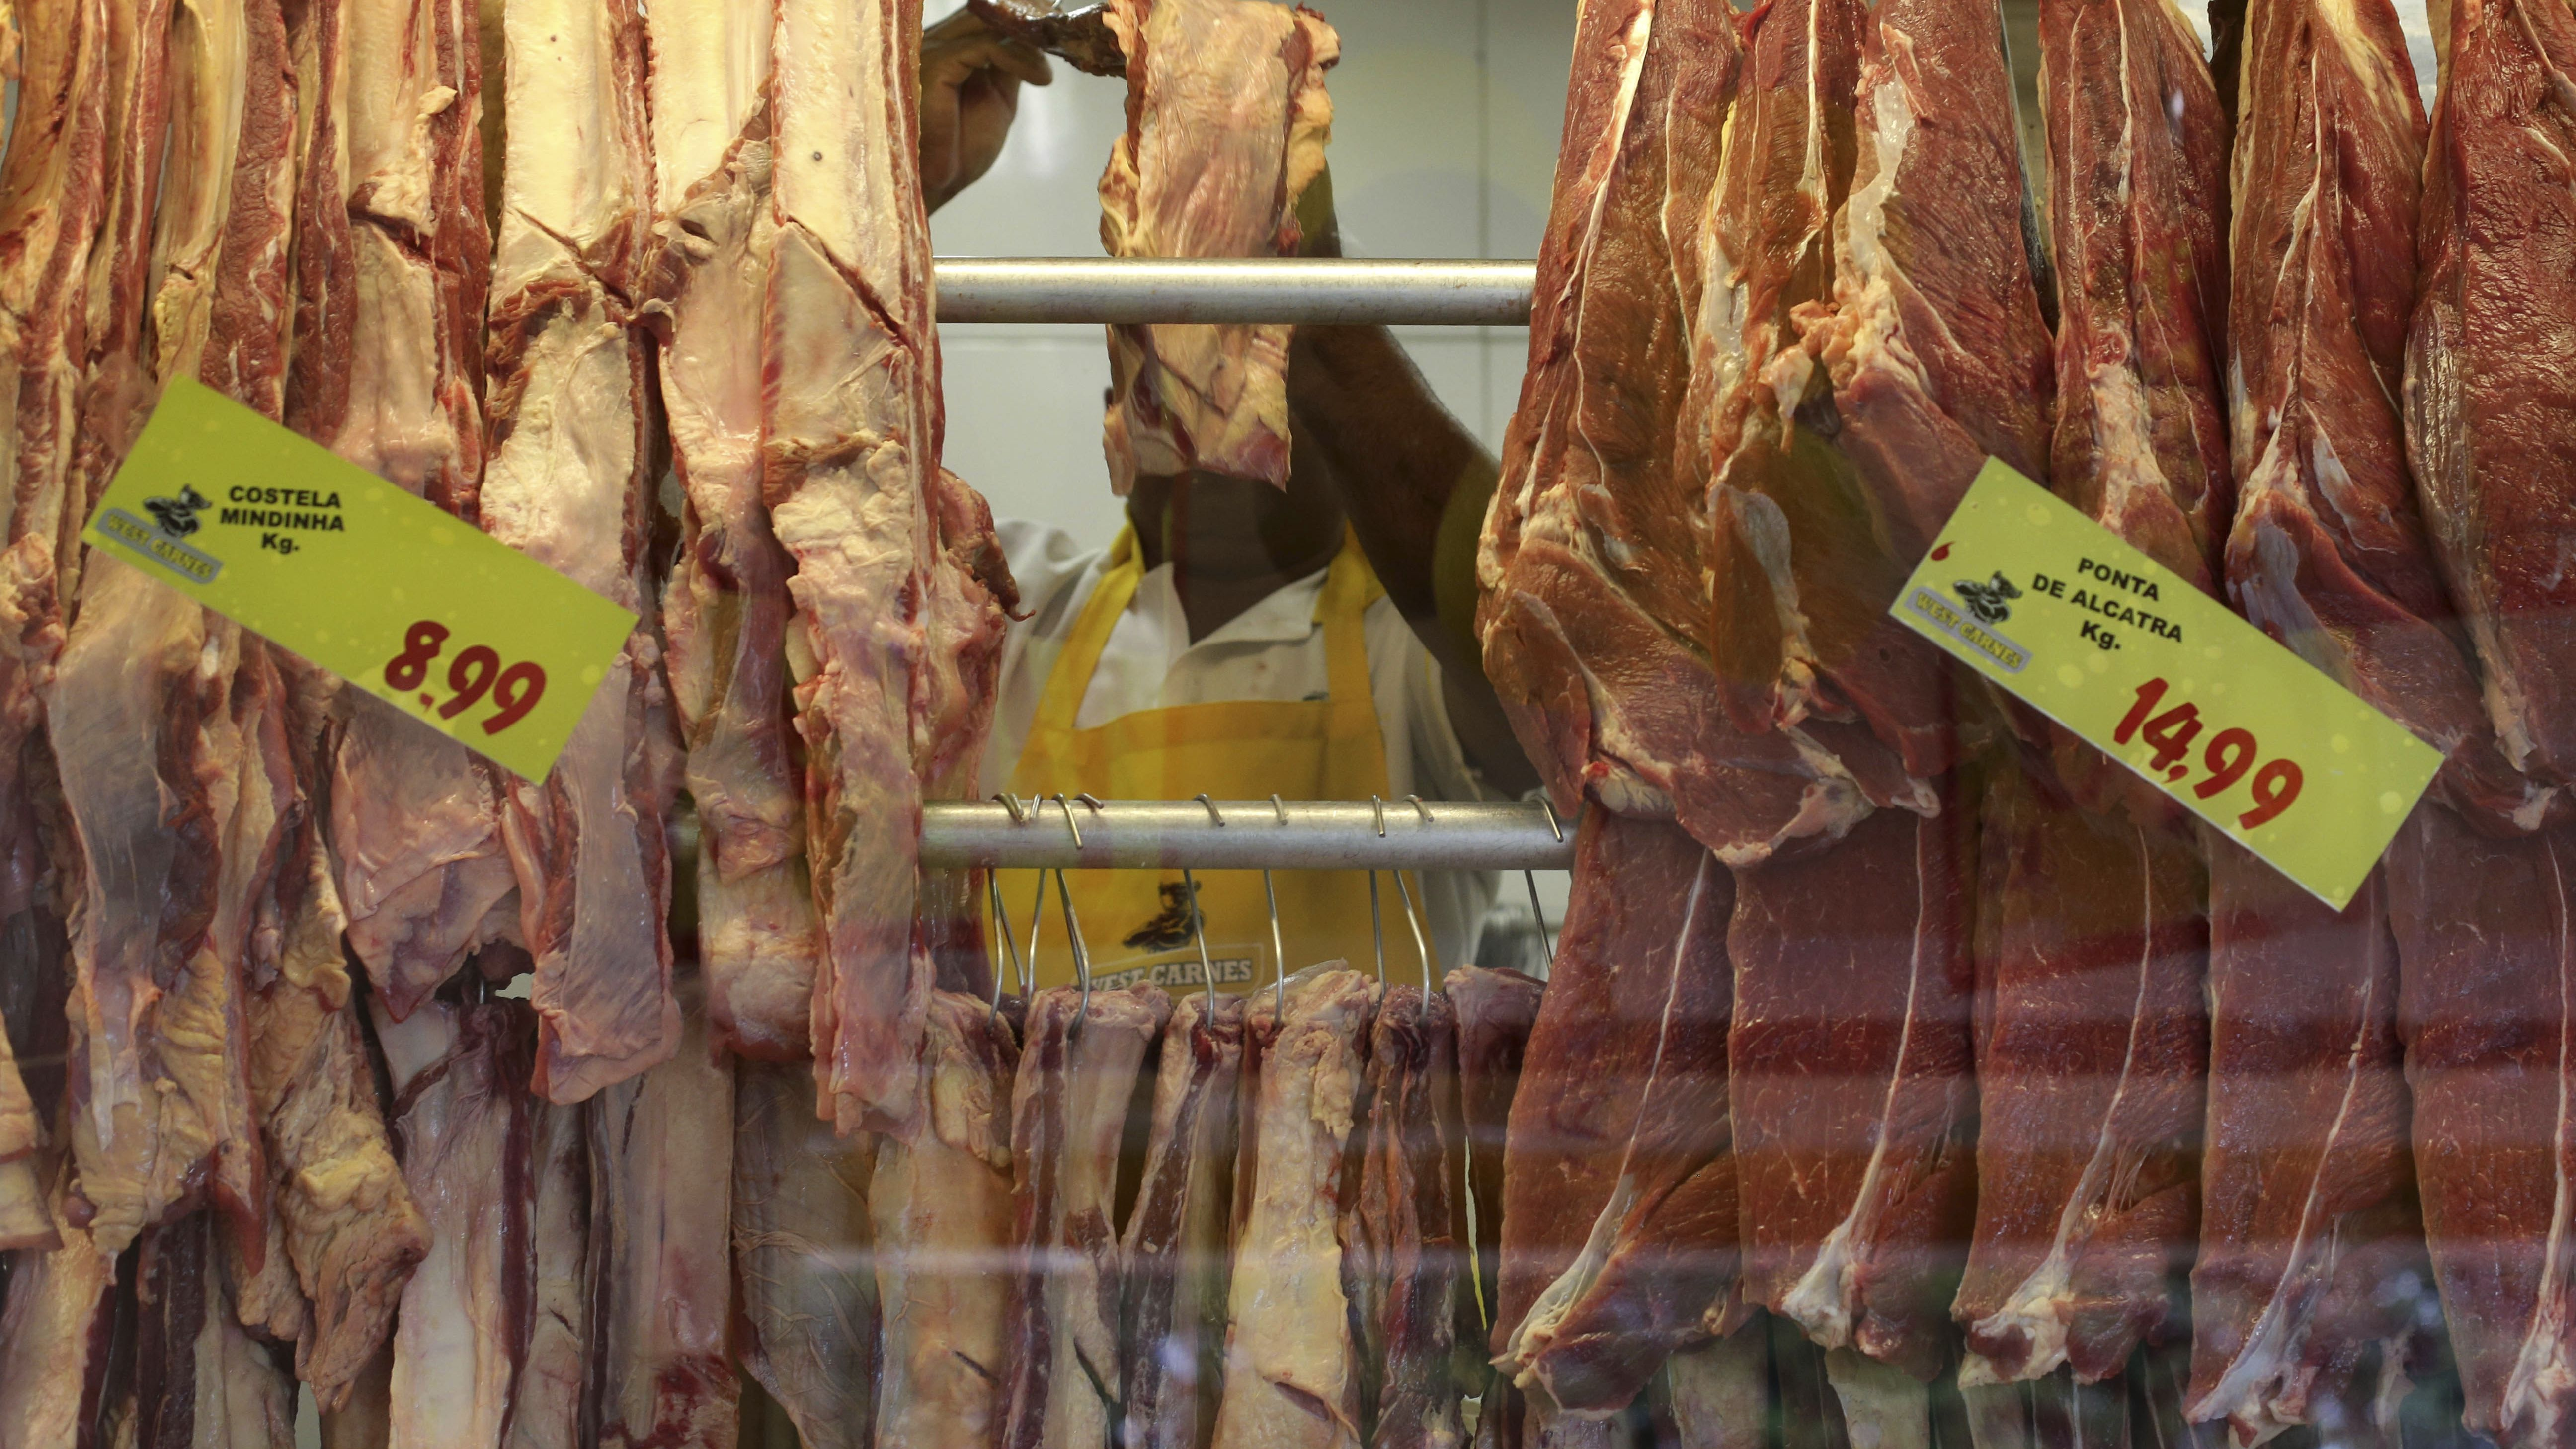 An employees works in a butcher shop in Brasilia, Brazil, Monday, March 20, 2017. The European Union's spokesman in Brazil says the union is temporarily halting some imports of Brazilian meat amid an investigation into a massive scheme of meat adulteration, which involved some of the country's largest producers.